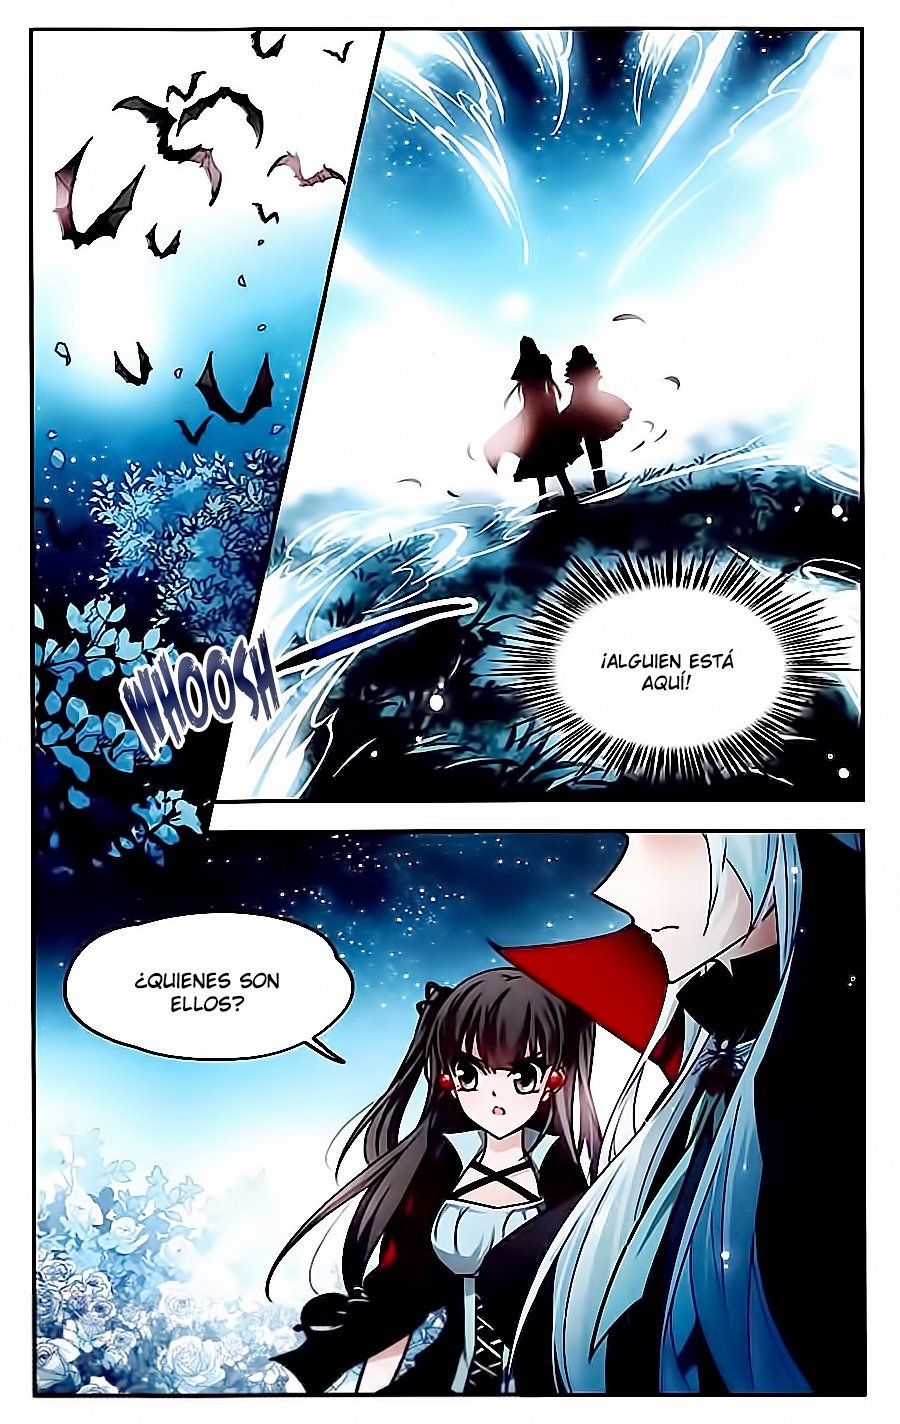 A Journey To The Past Capitulo 65 Pagina 1 Leer Manga En Espanol